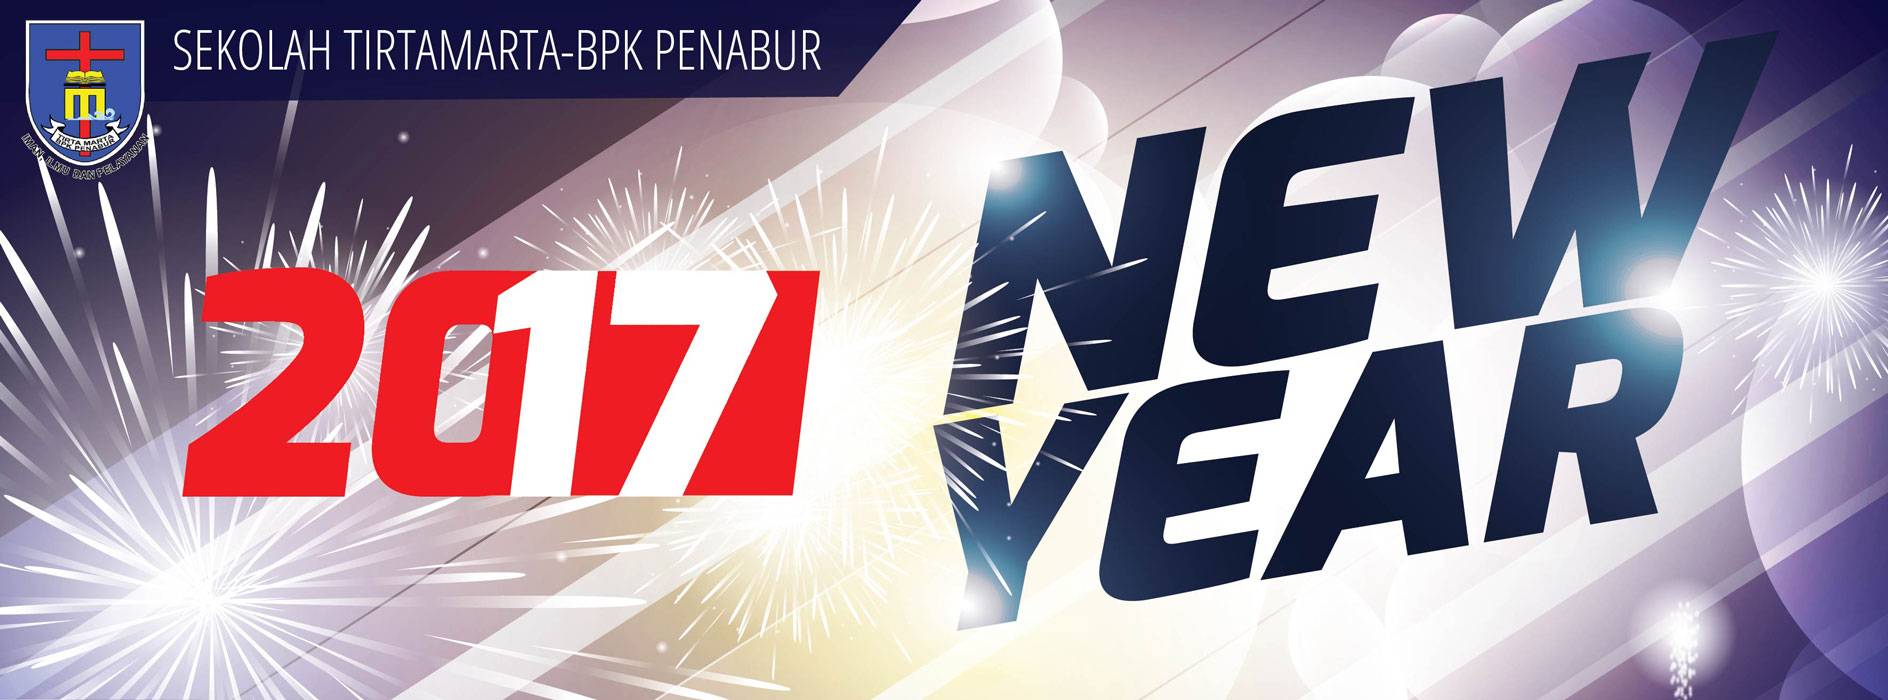 web-banner-new-year-2017